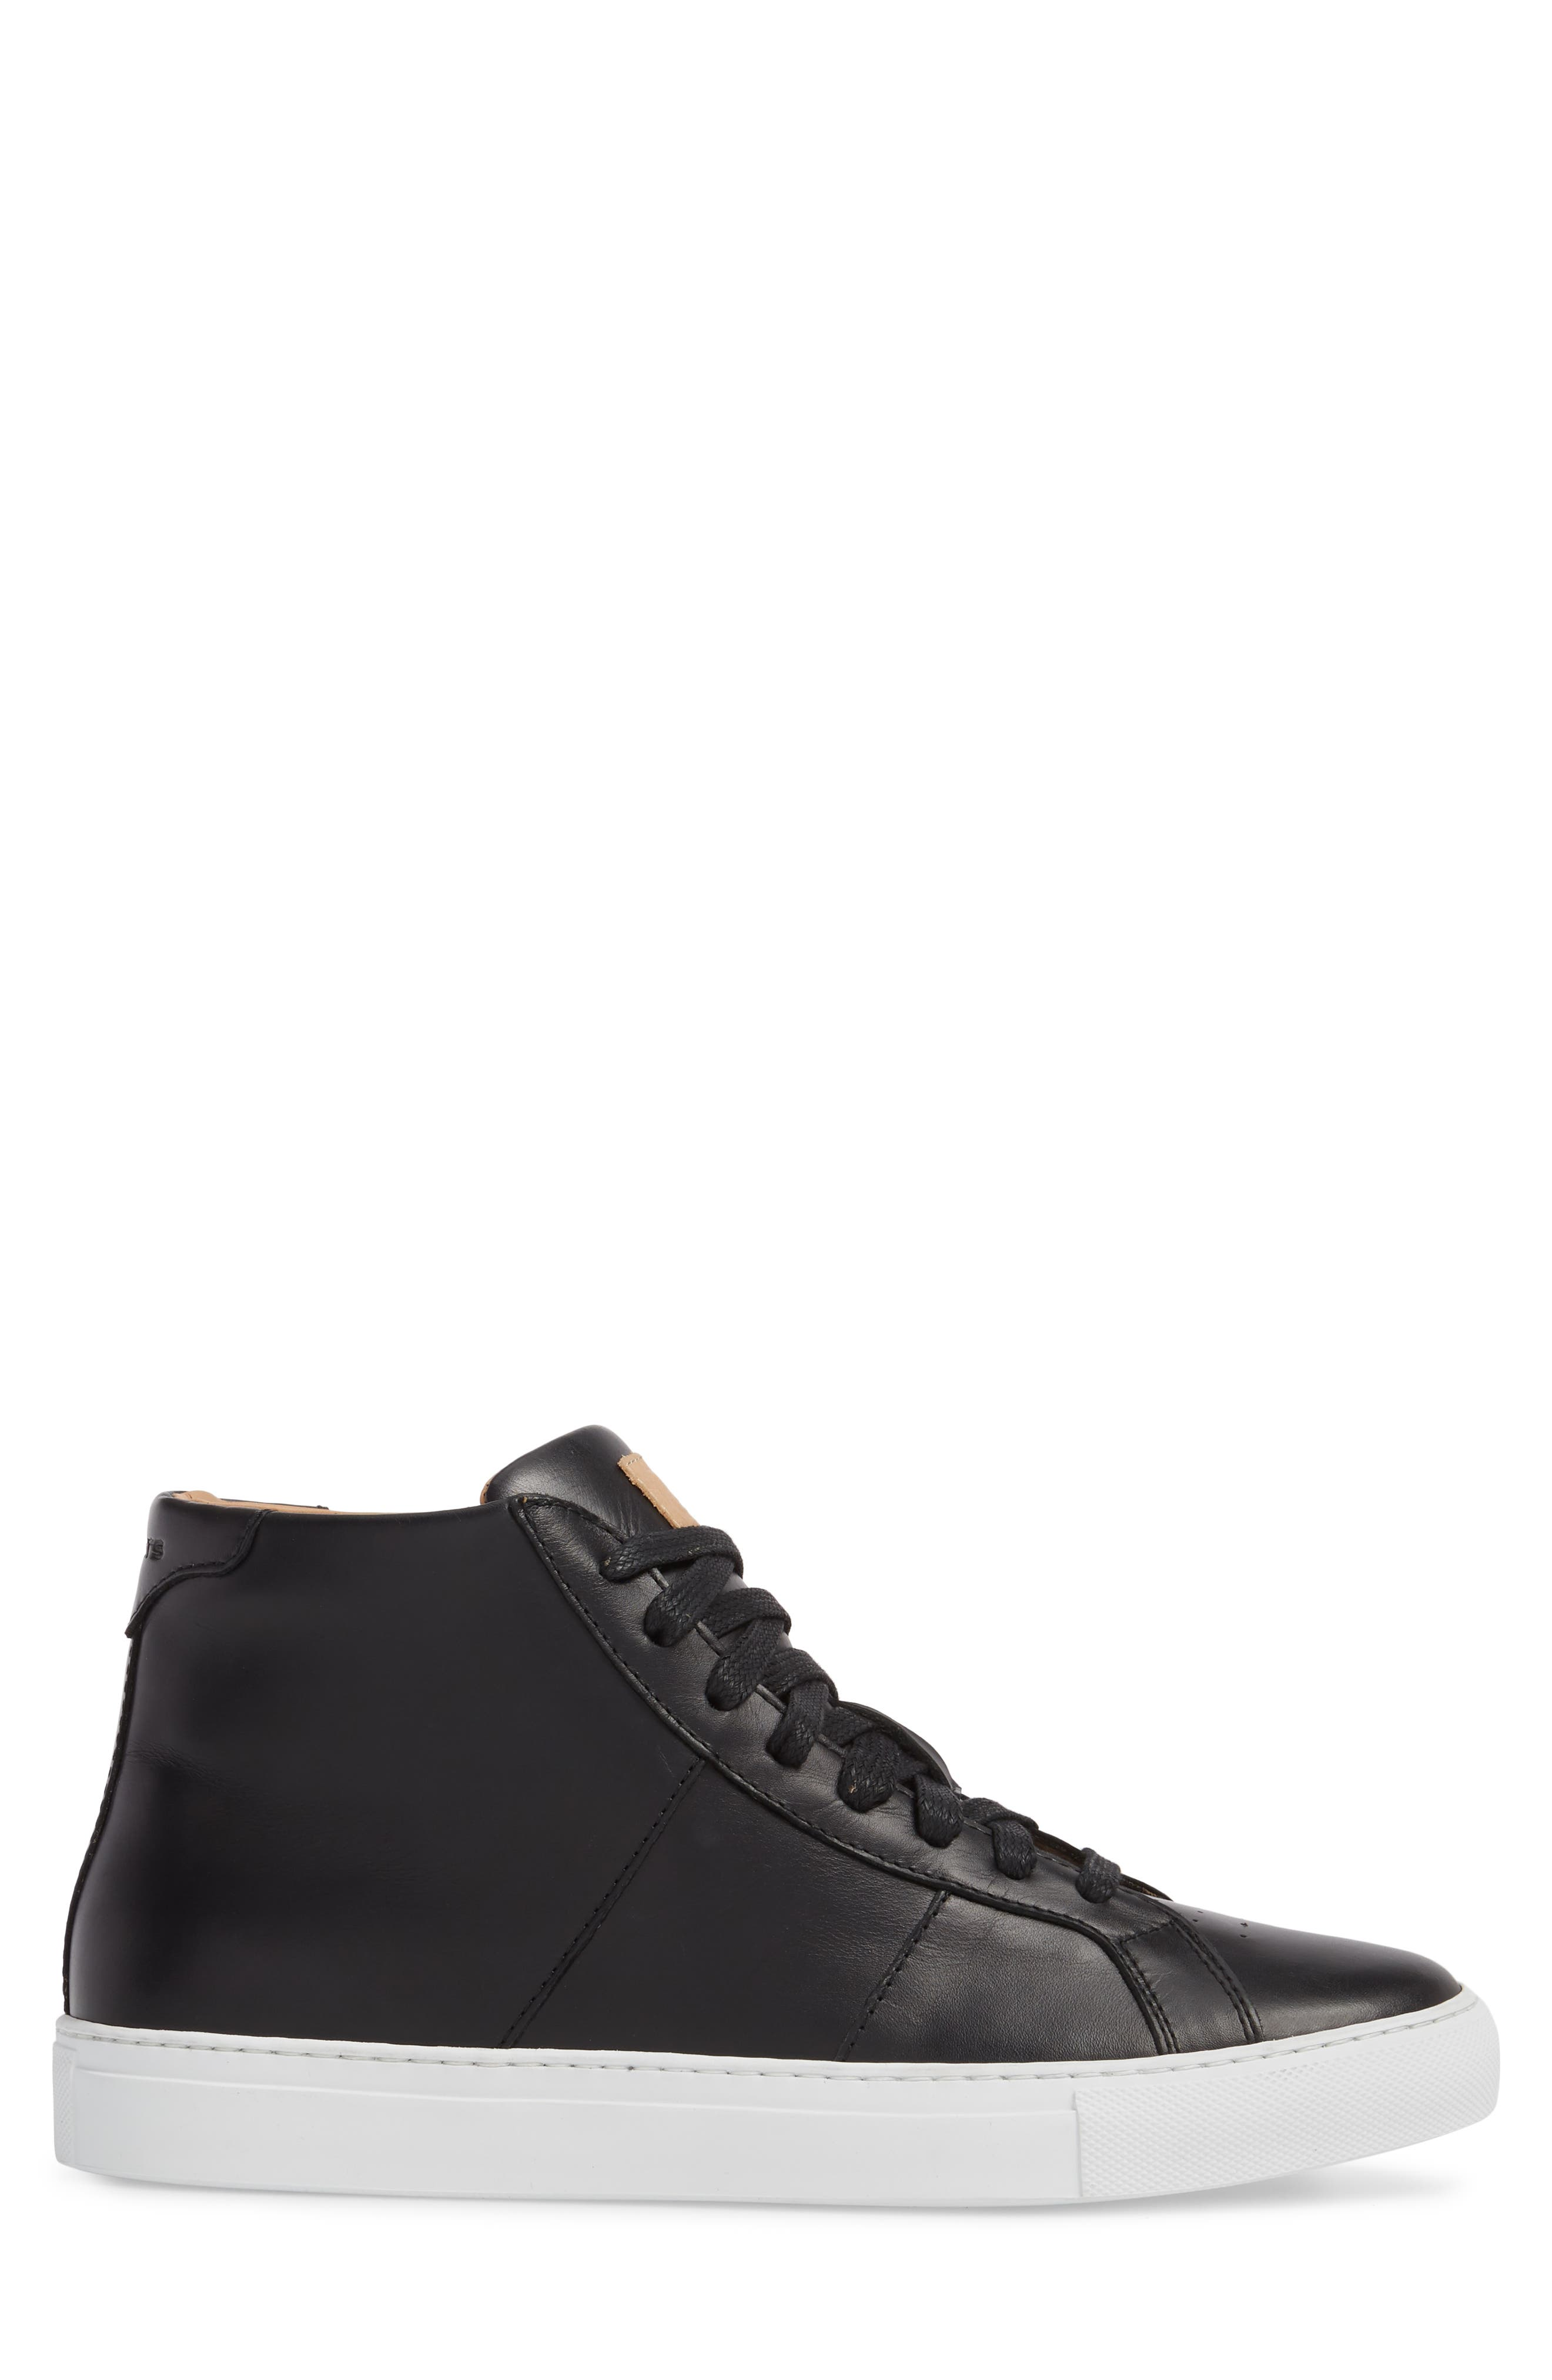 Royale High Top Sneaker,                             Alternate thumbnail 3, color,                             001